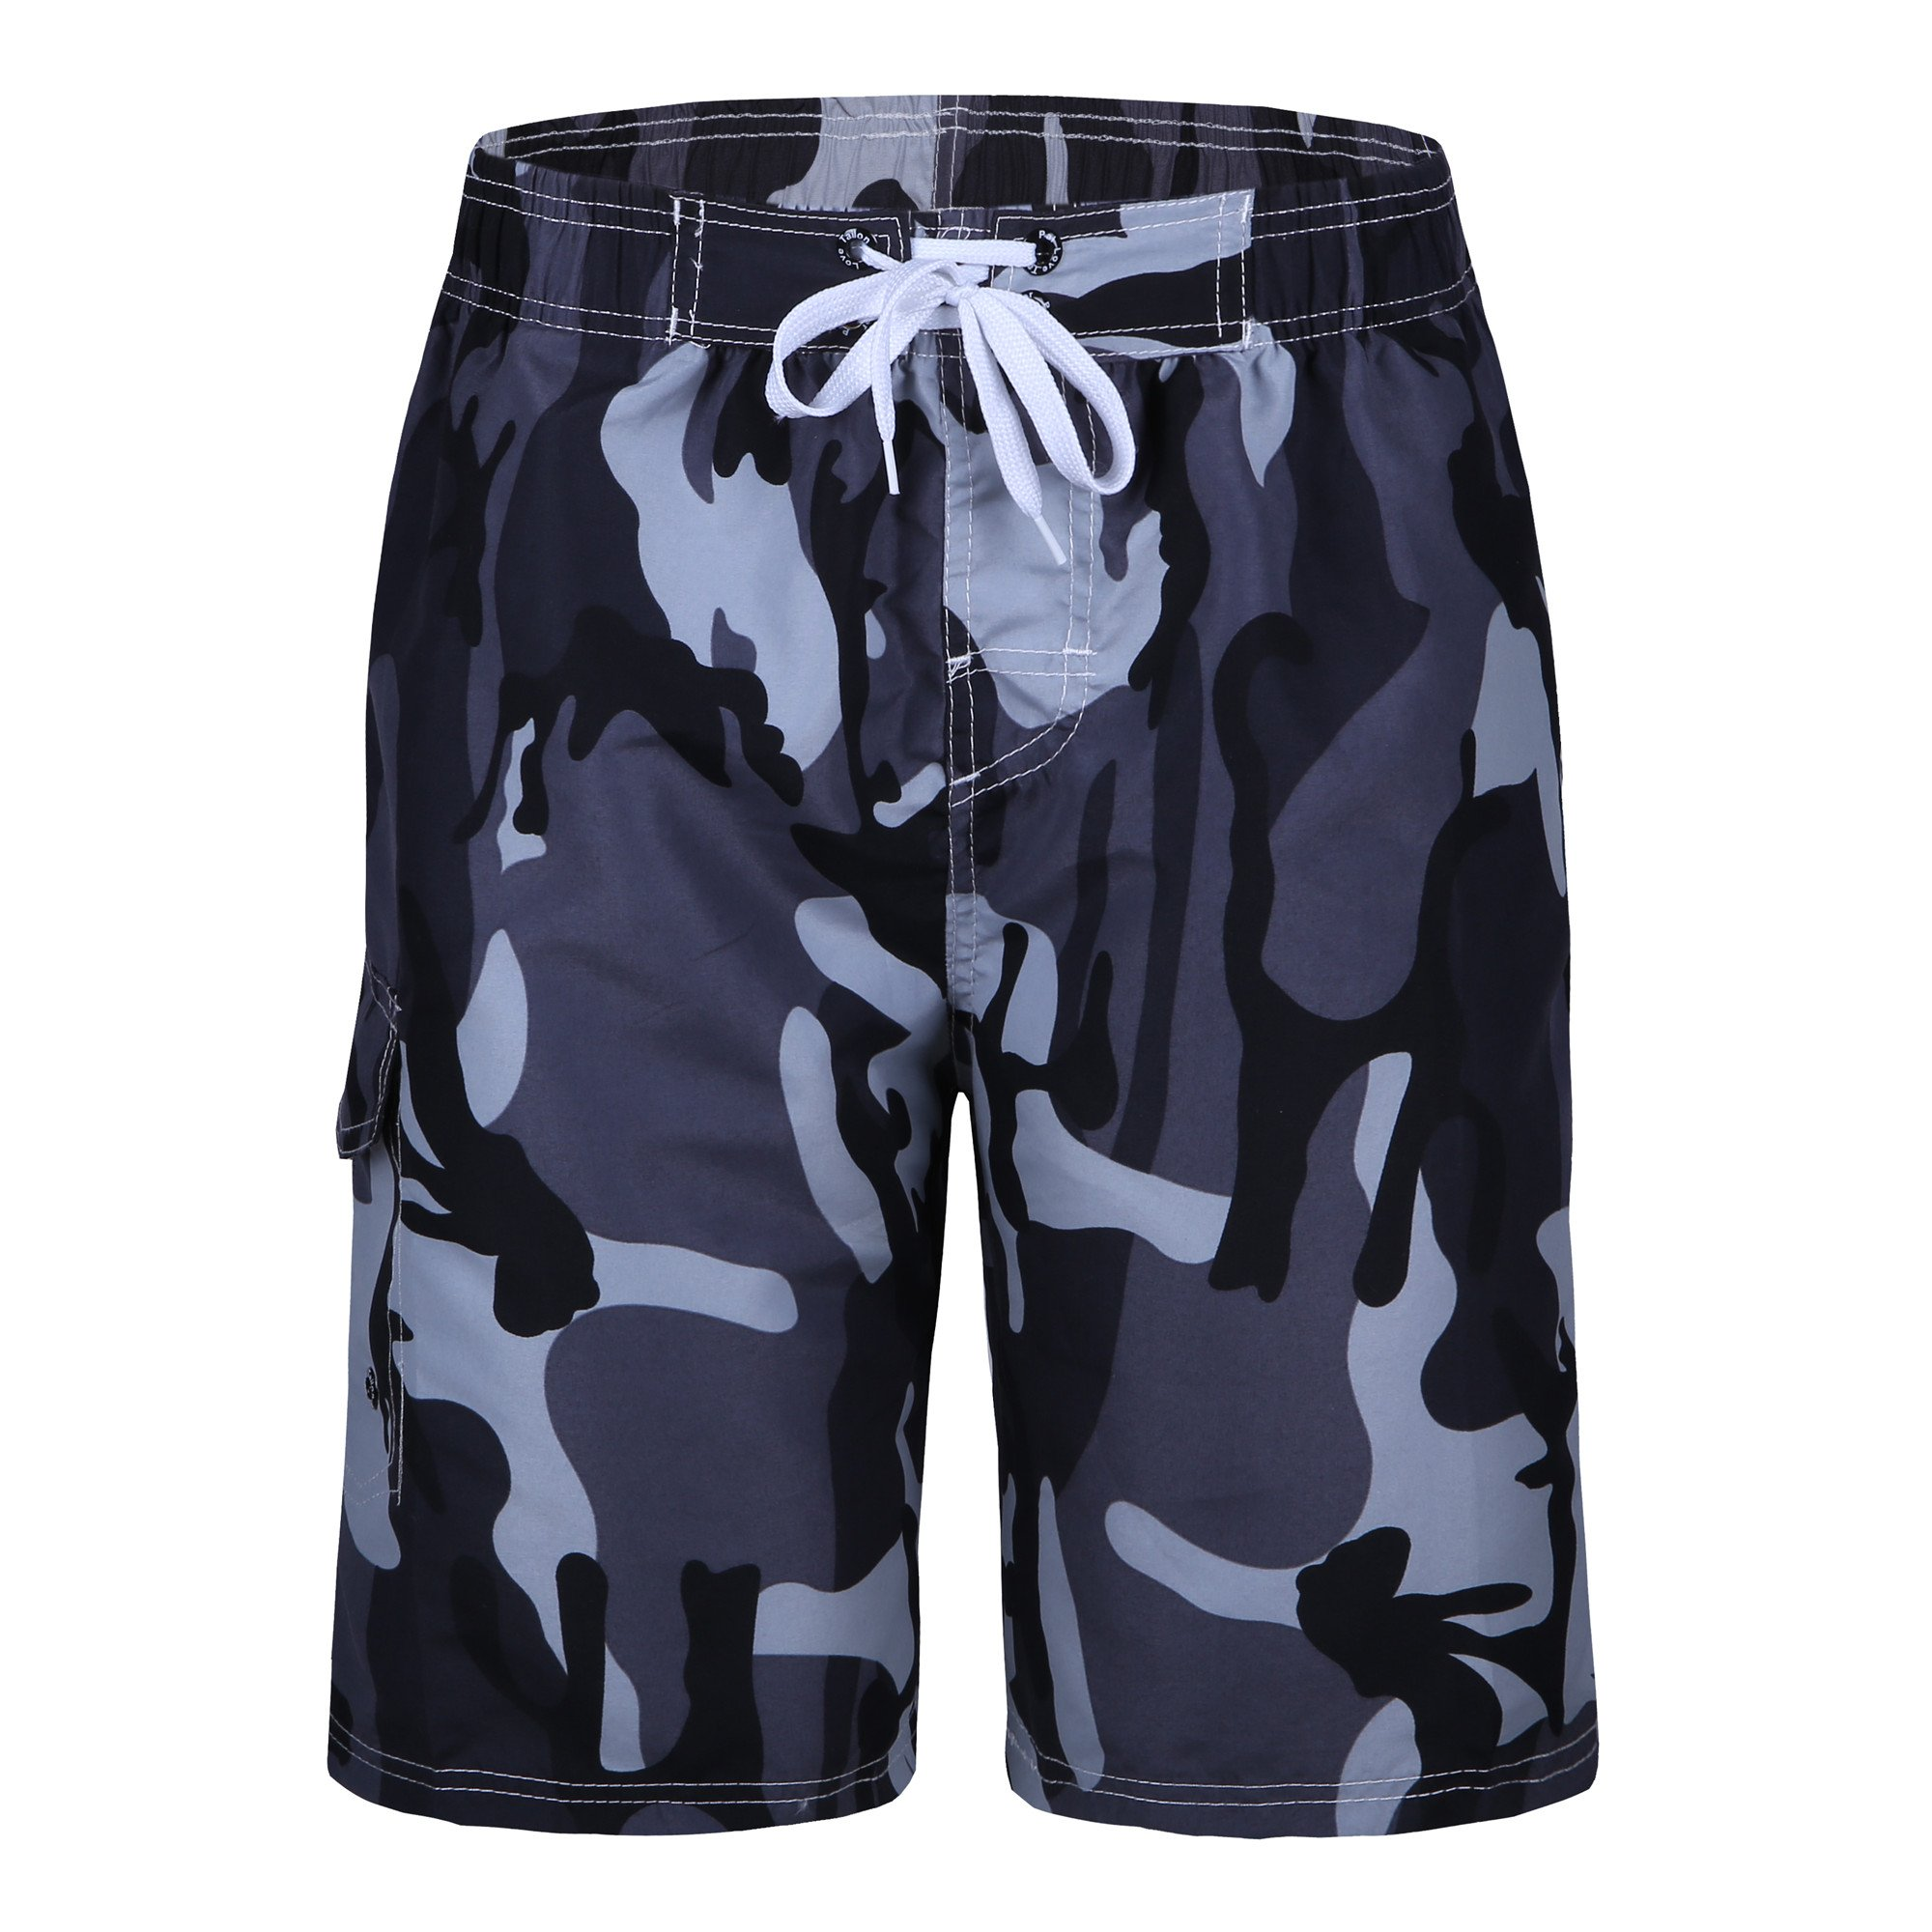 Men's Swim Trunks Quick Dry Camo Board Shorts Daily Beach Shorts with Pockets